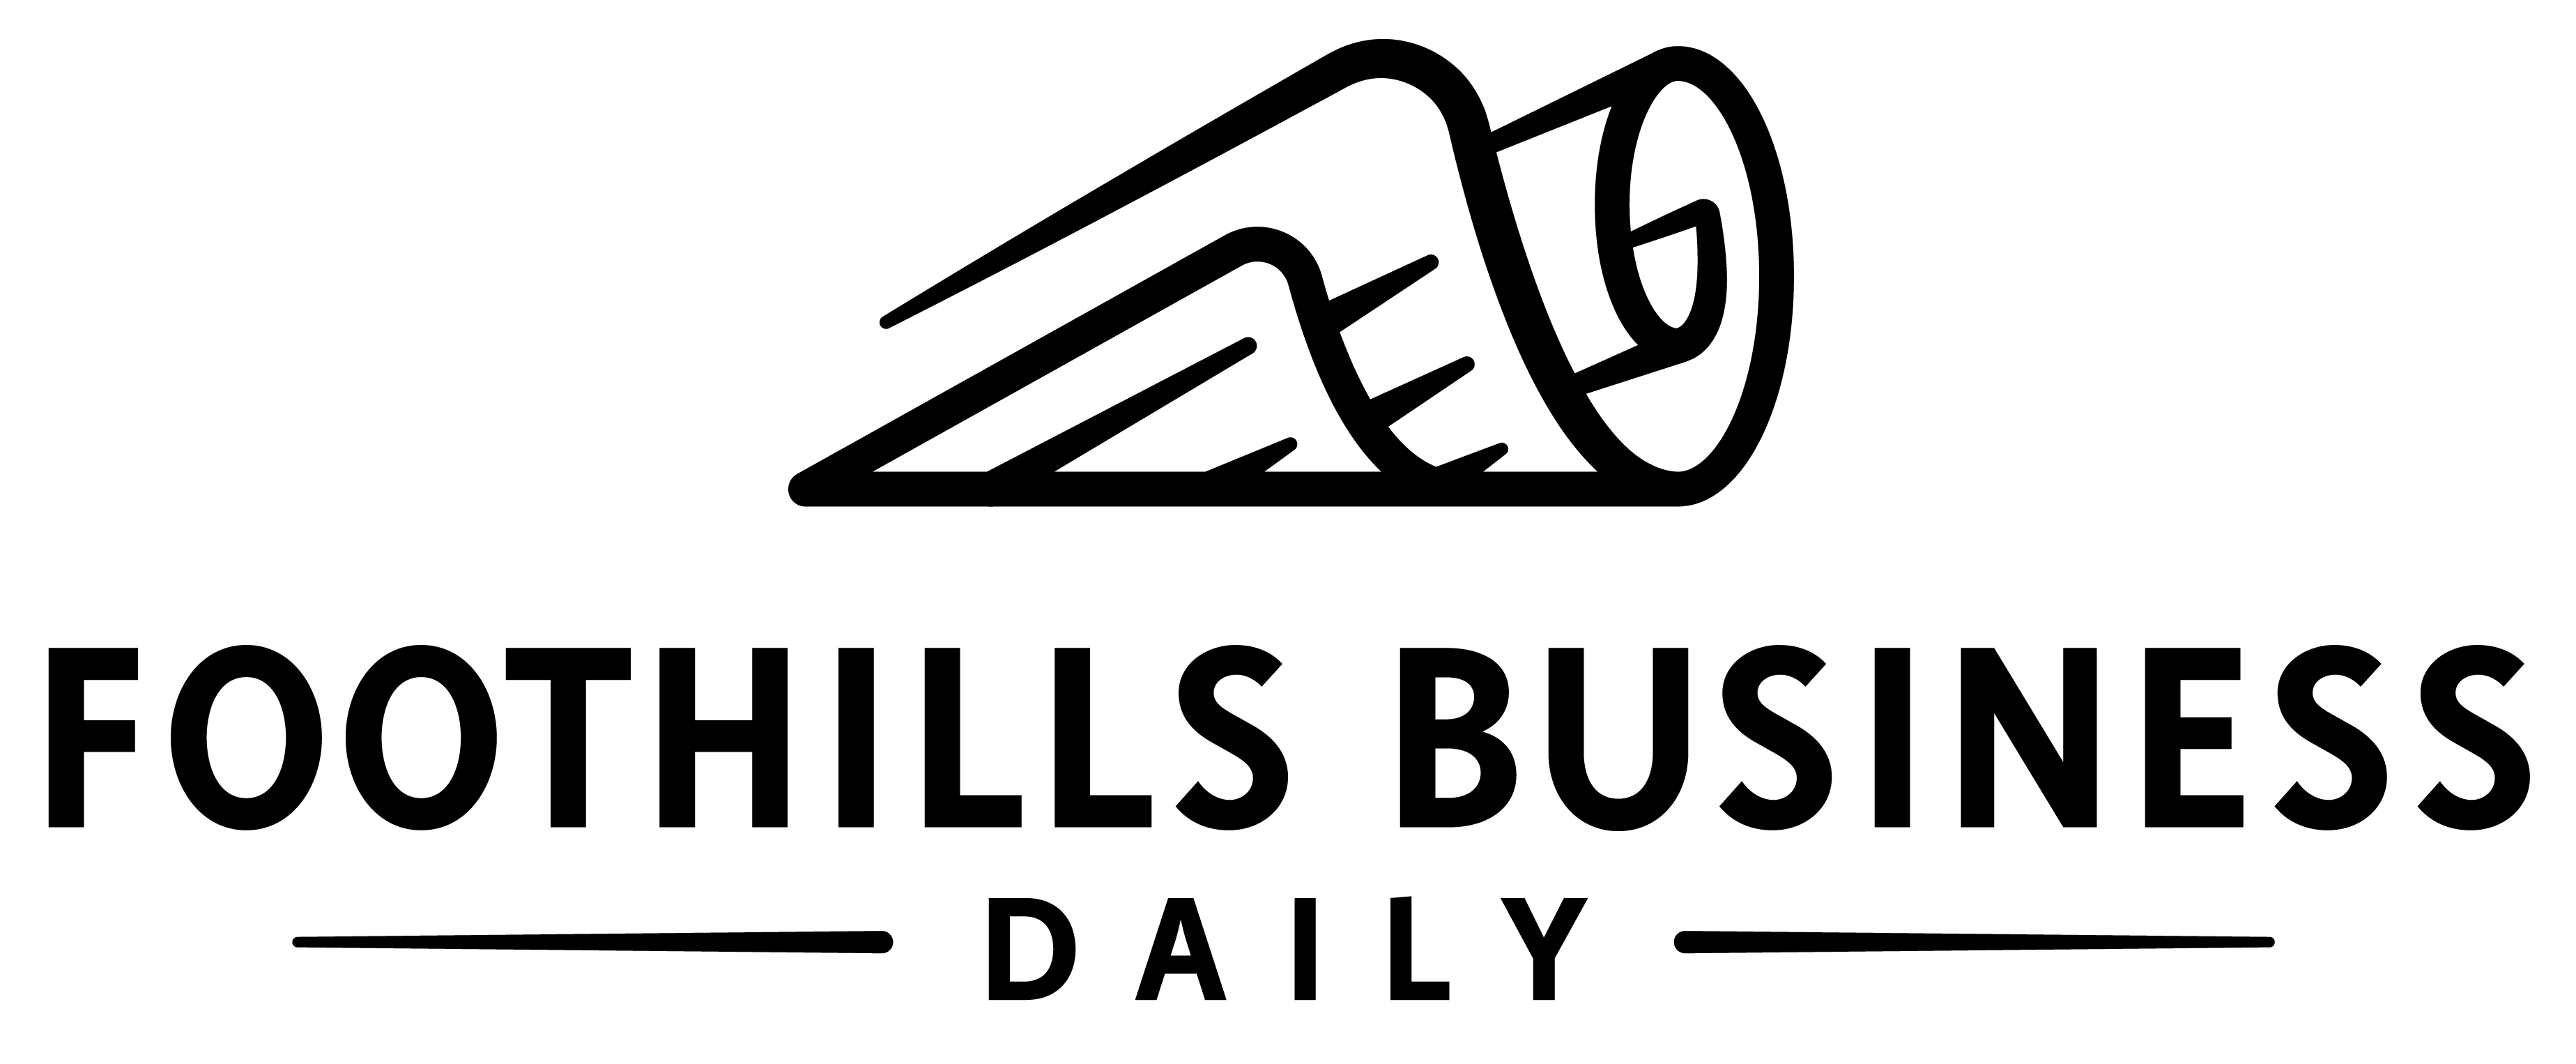 Foothills Business Daily